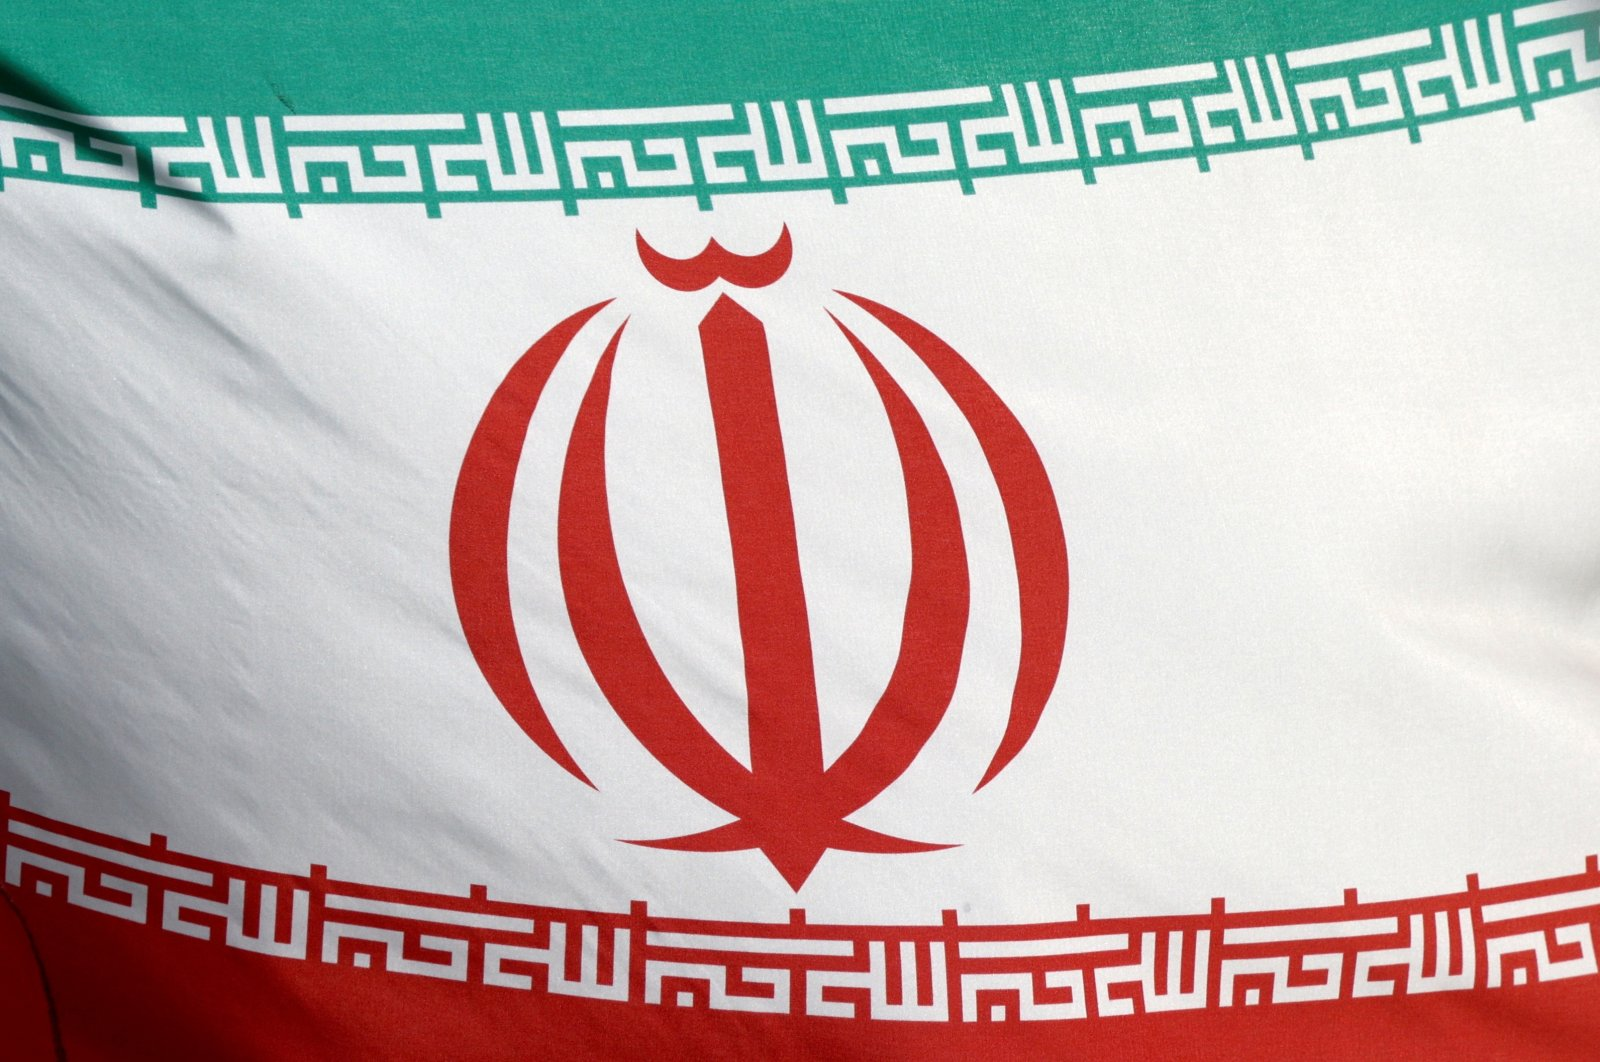 The Iranian flag waves in front of the International Atomic Energy Agency (IAEA) headquarters in Vienna, Austria, March 1, 2021. (Reuters Photo)